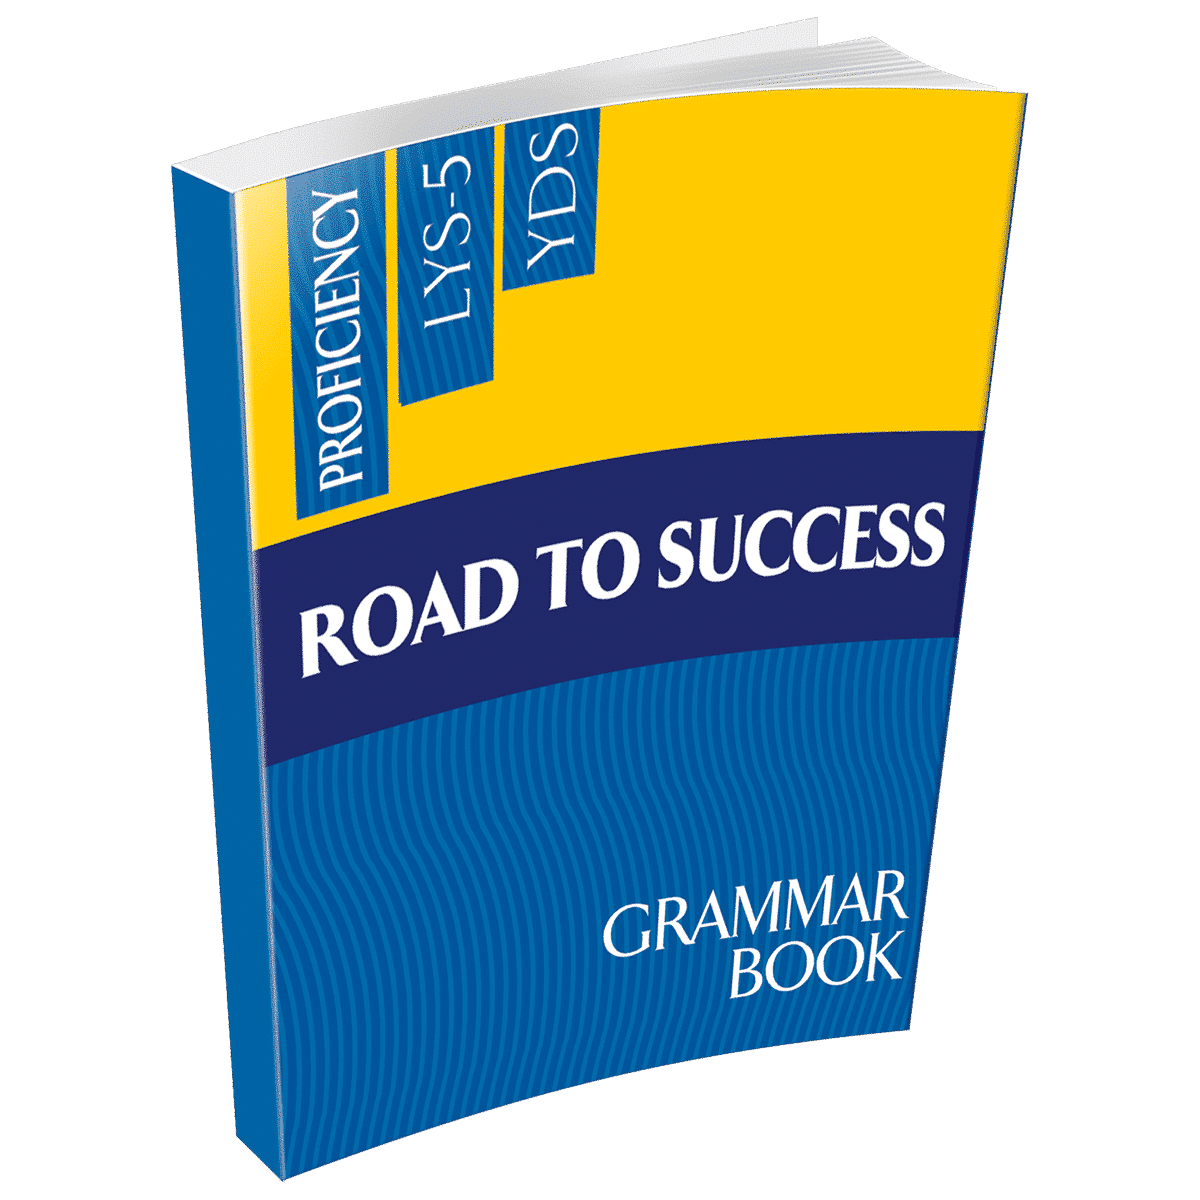 road to success grammar book Road To Success Grammar Book road to success grammar 001 min 1200x1200